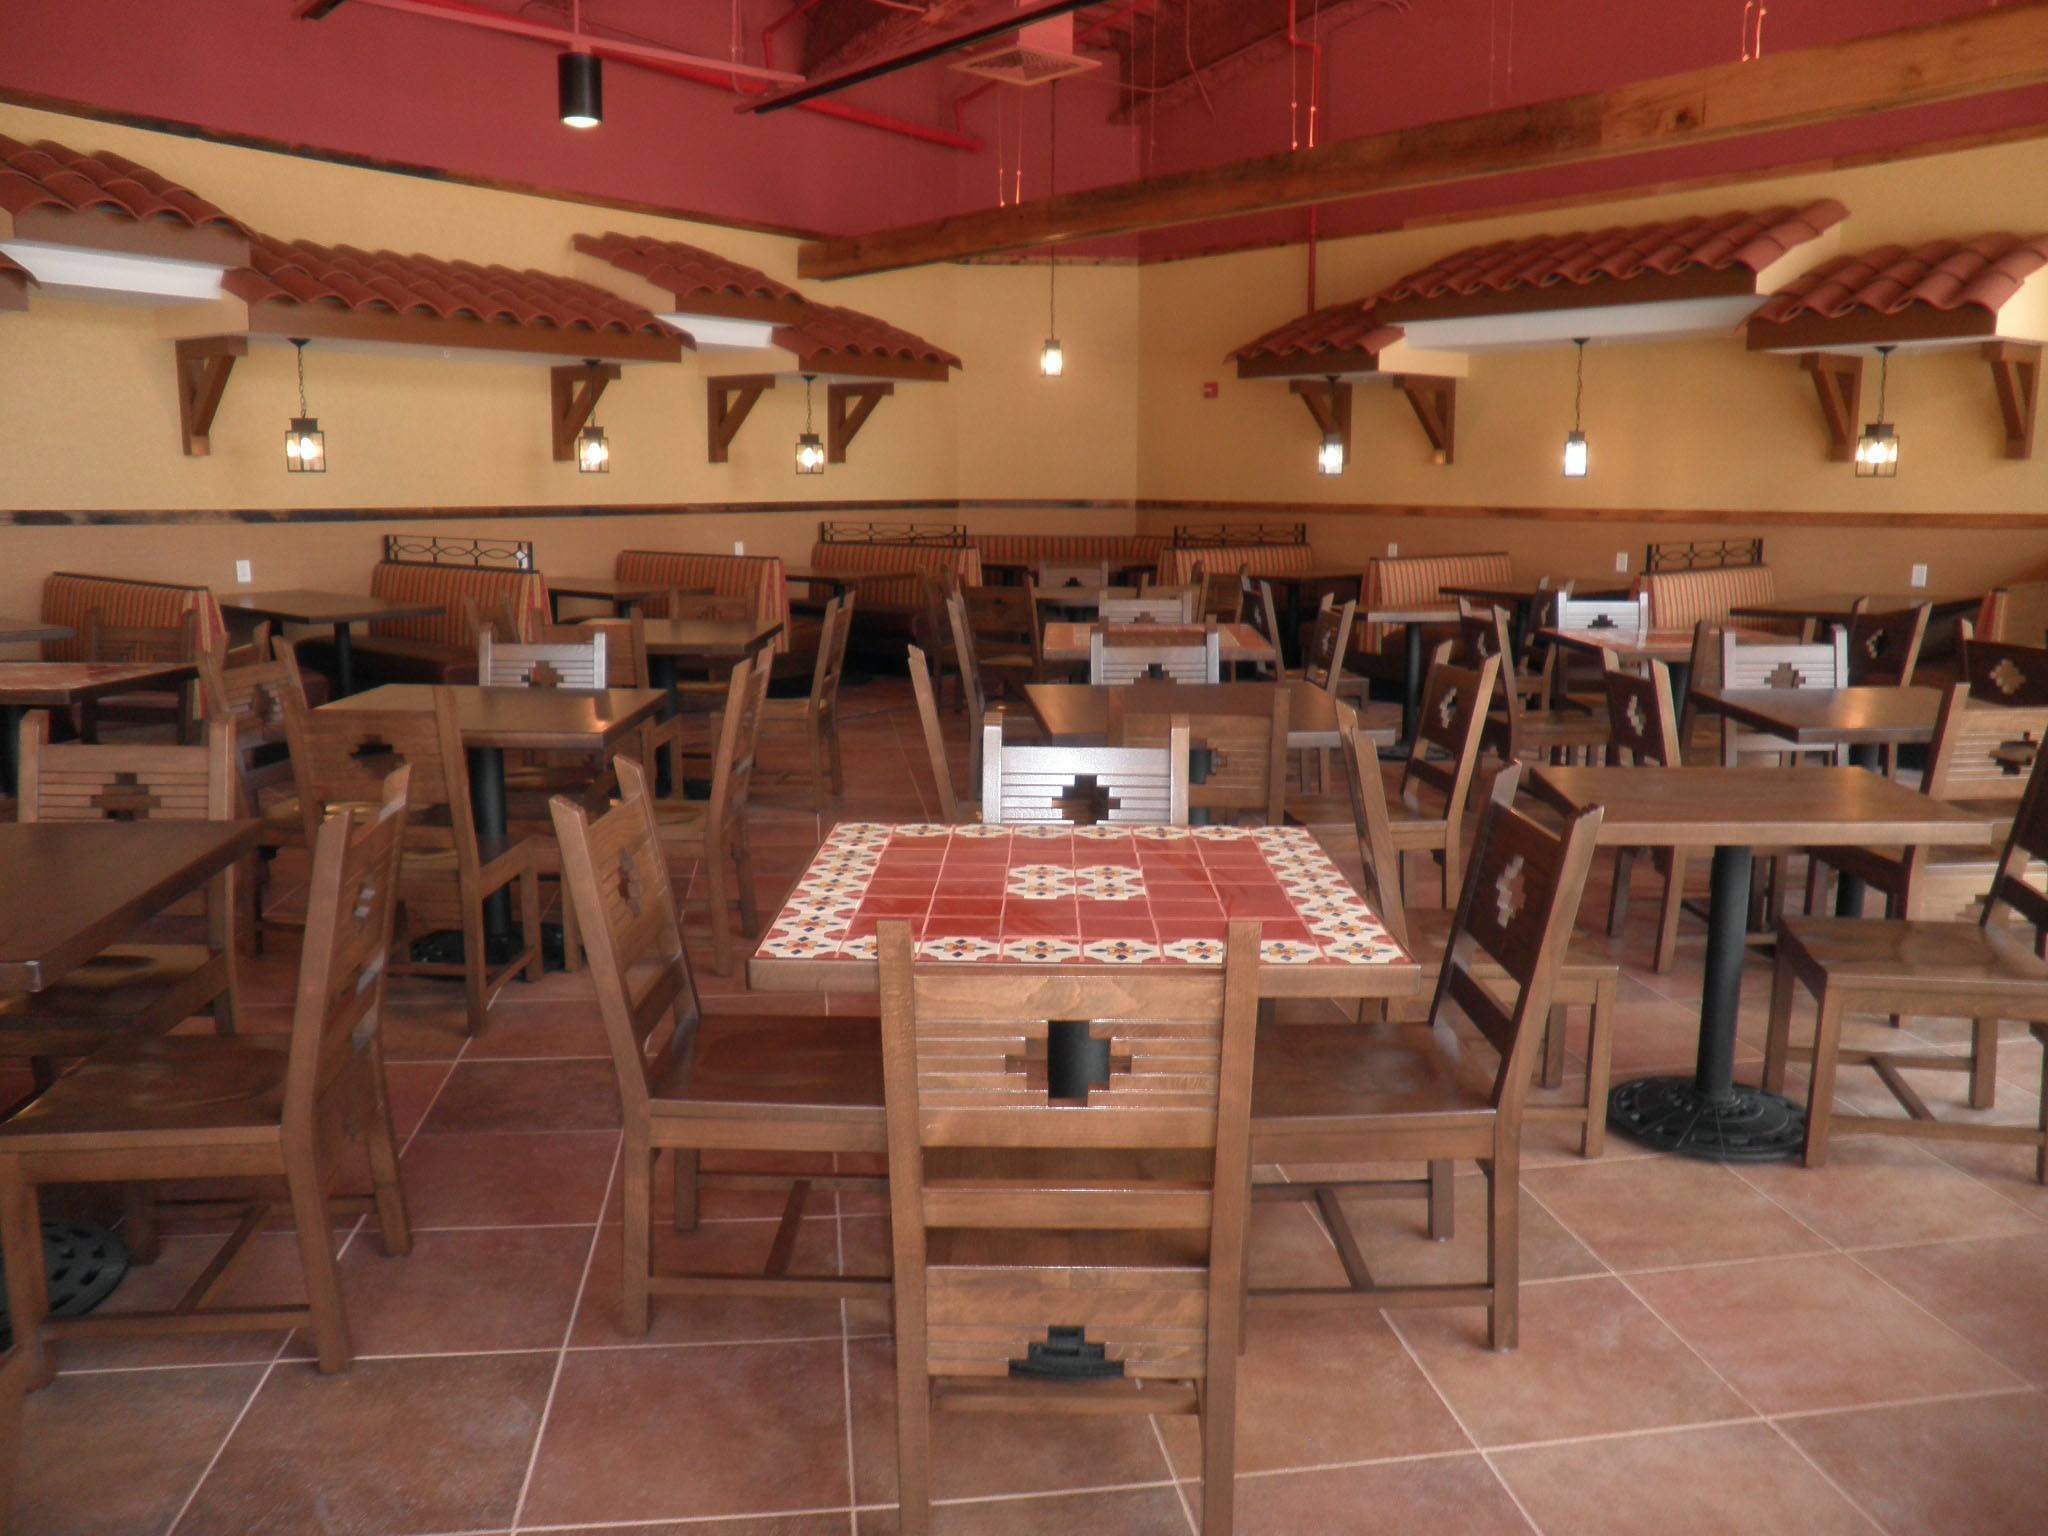 Rochester Institute of Technology Mexican Resturant